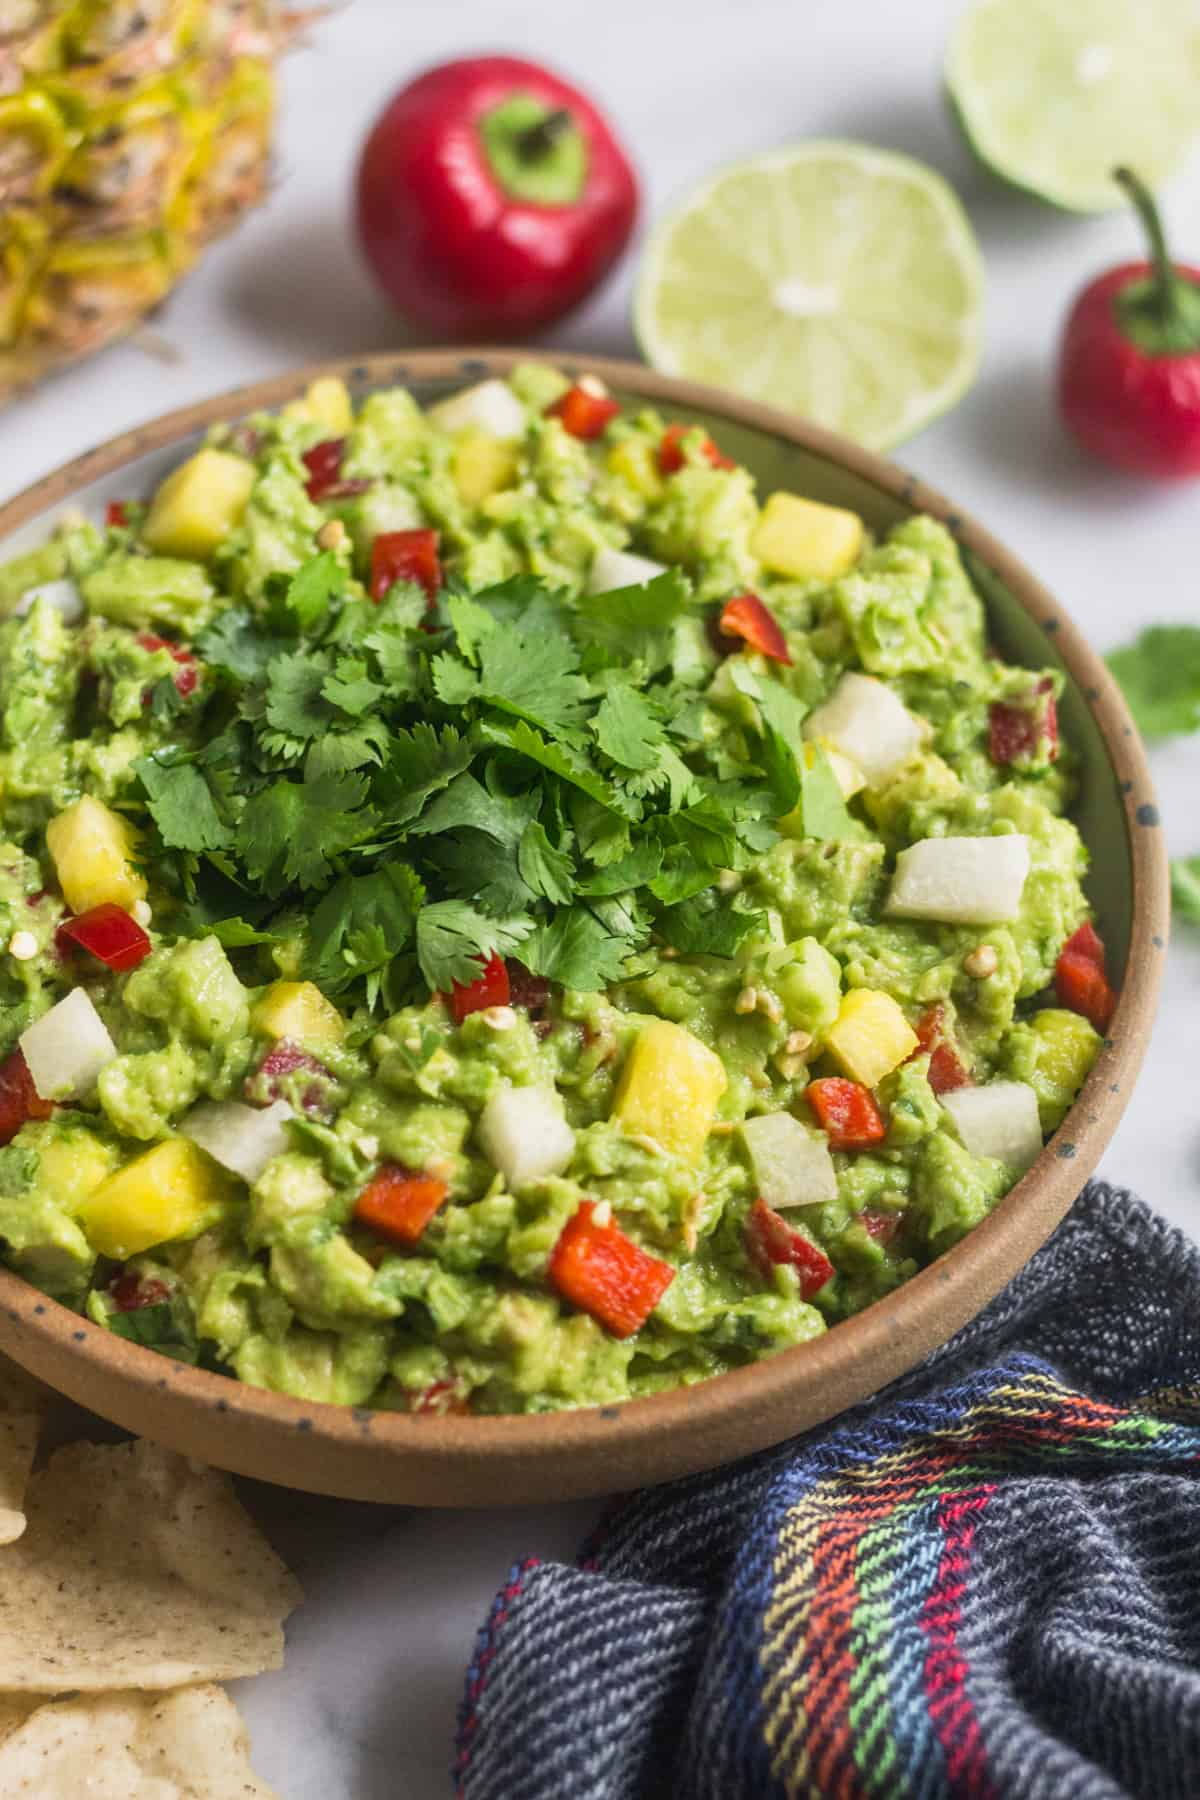 Large bowl filled with pineapple jicama guacamole with a blue towel, chips, limes, and cherry peppers around it